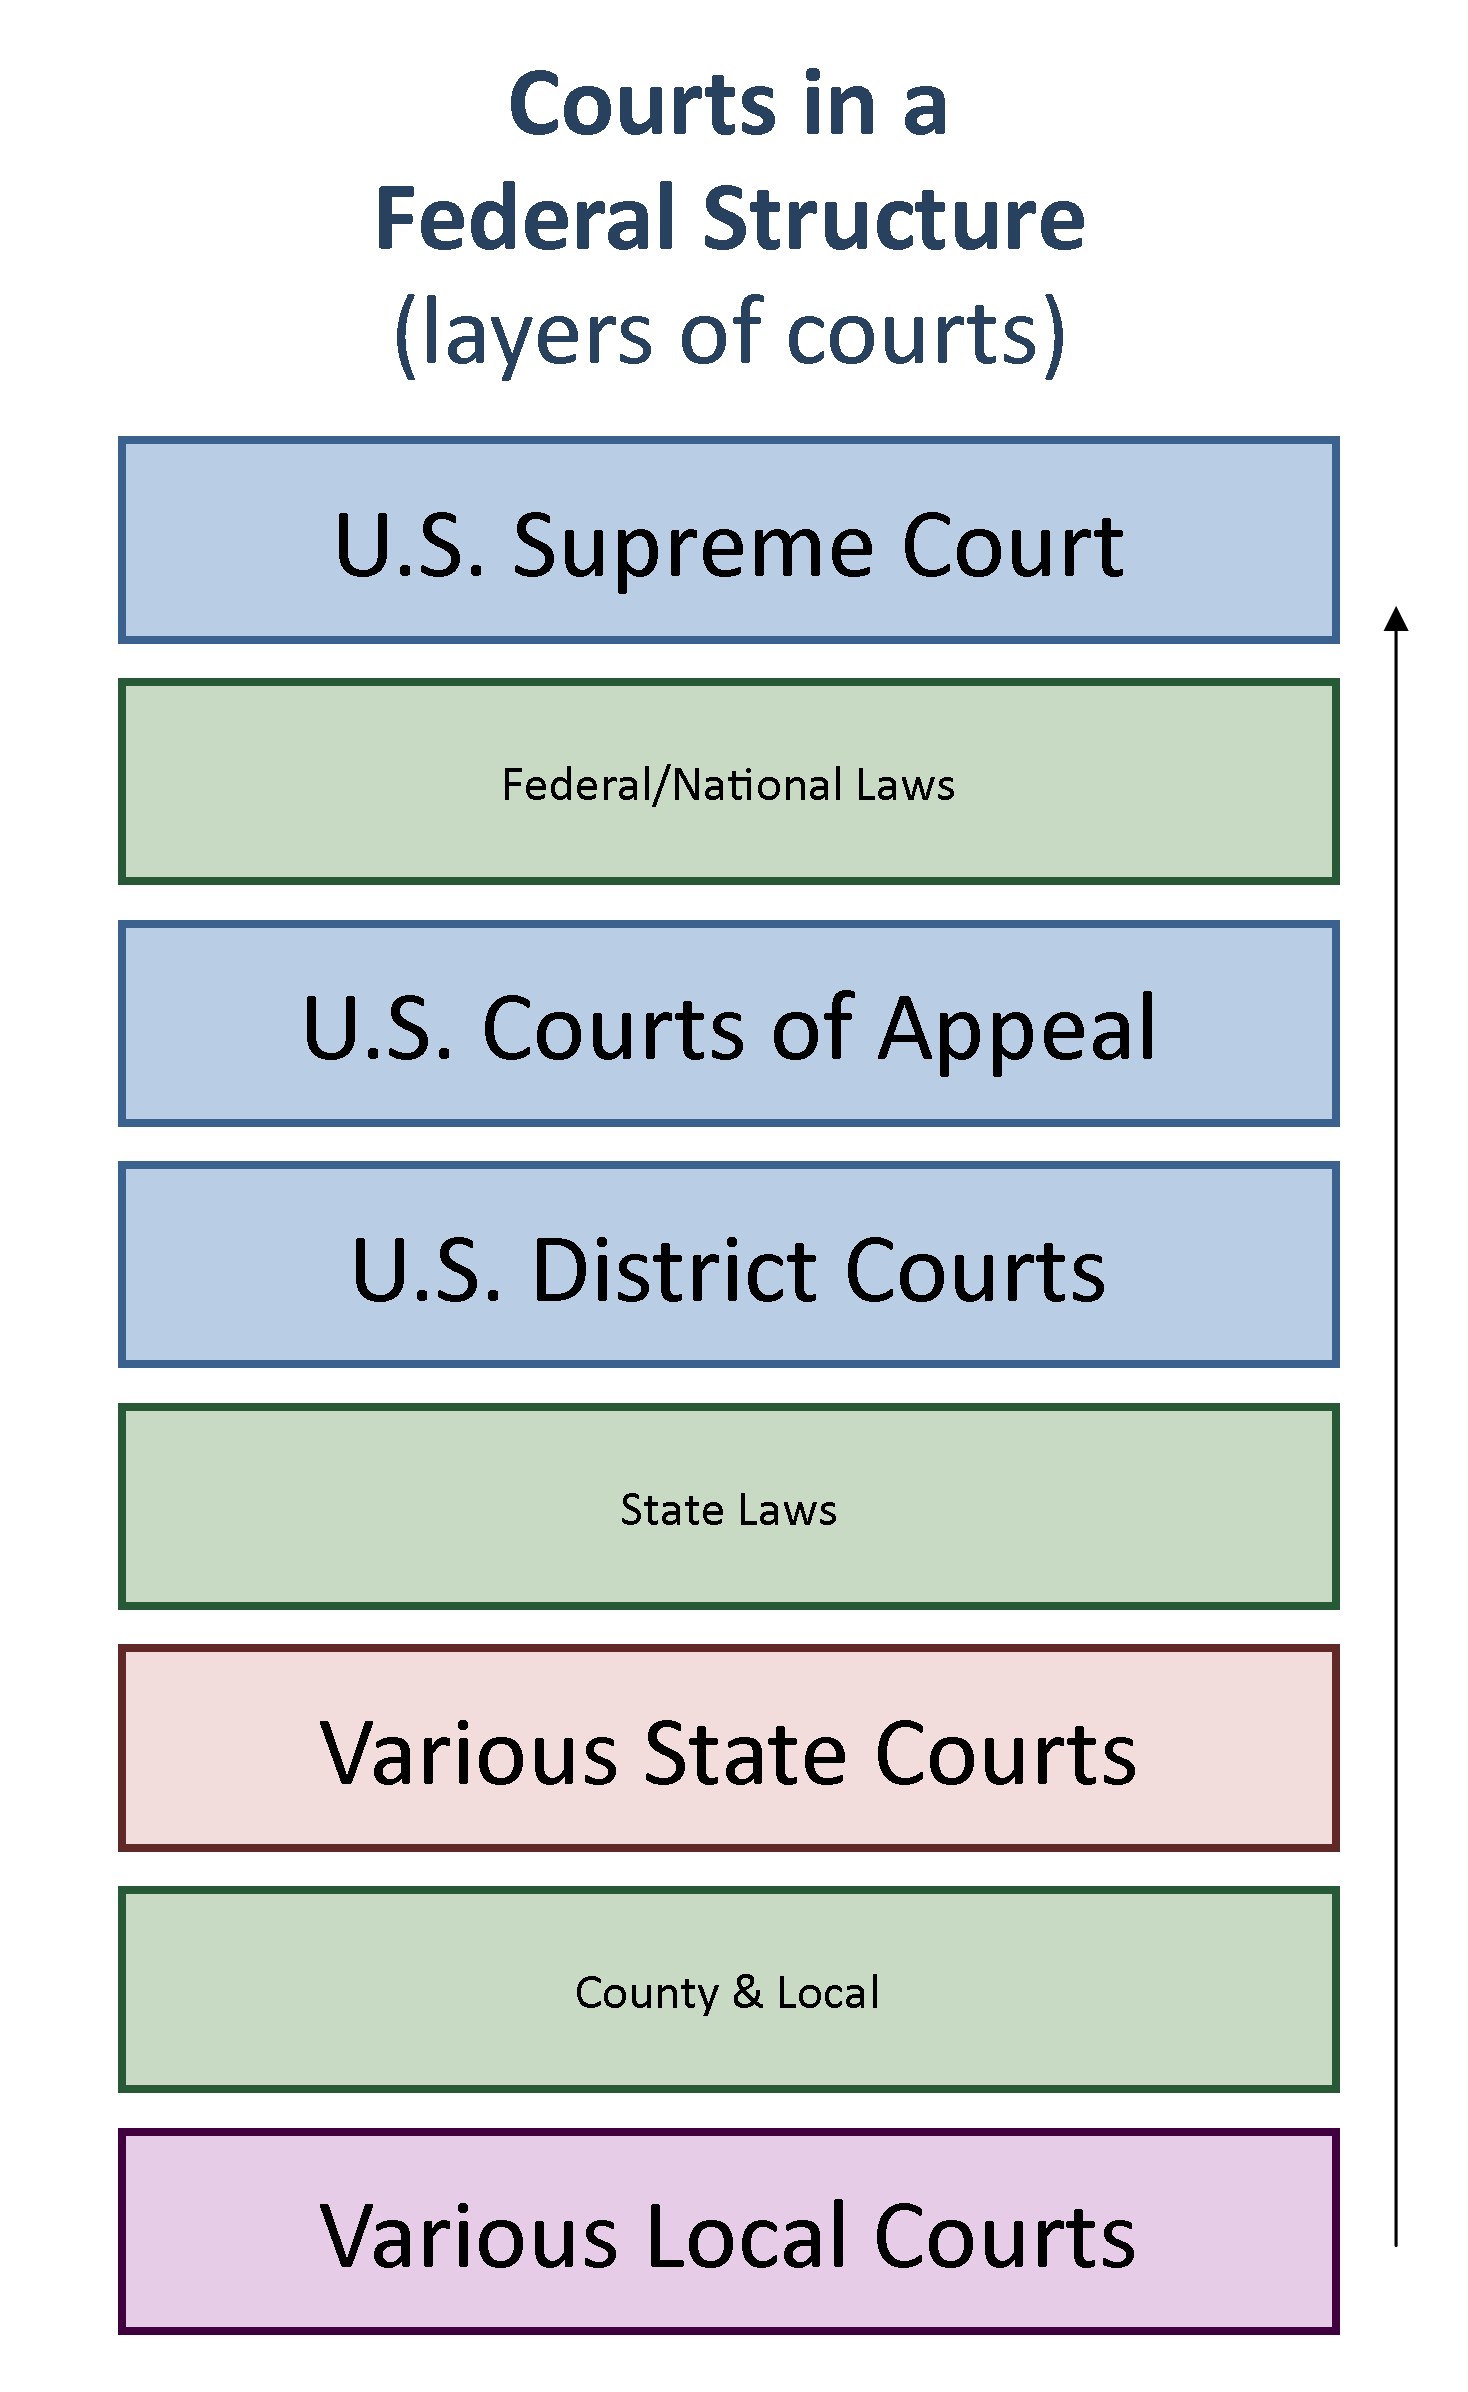 Chart showing how courts are structure vertically from local at the bottom to the Supreme Court at the top.